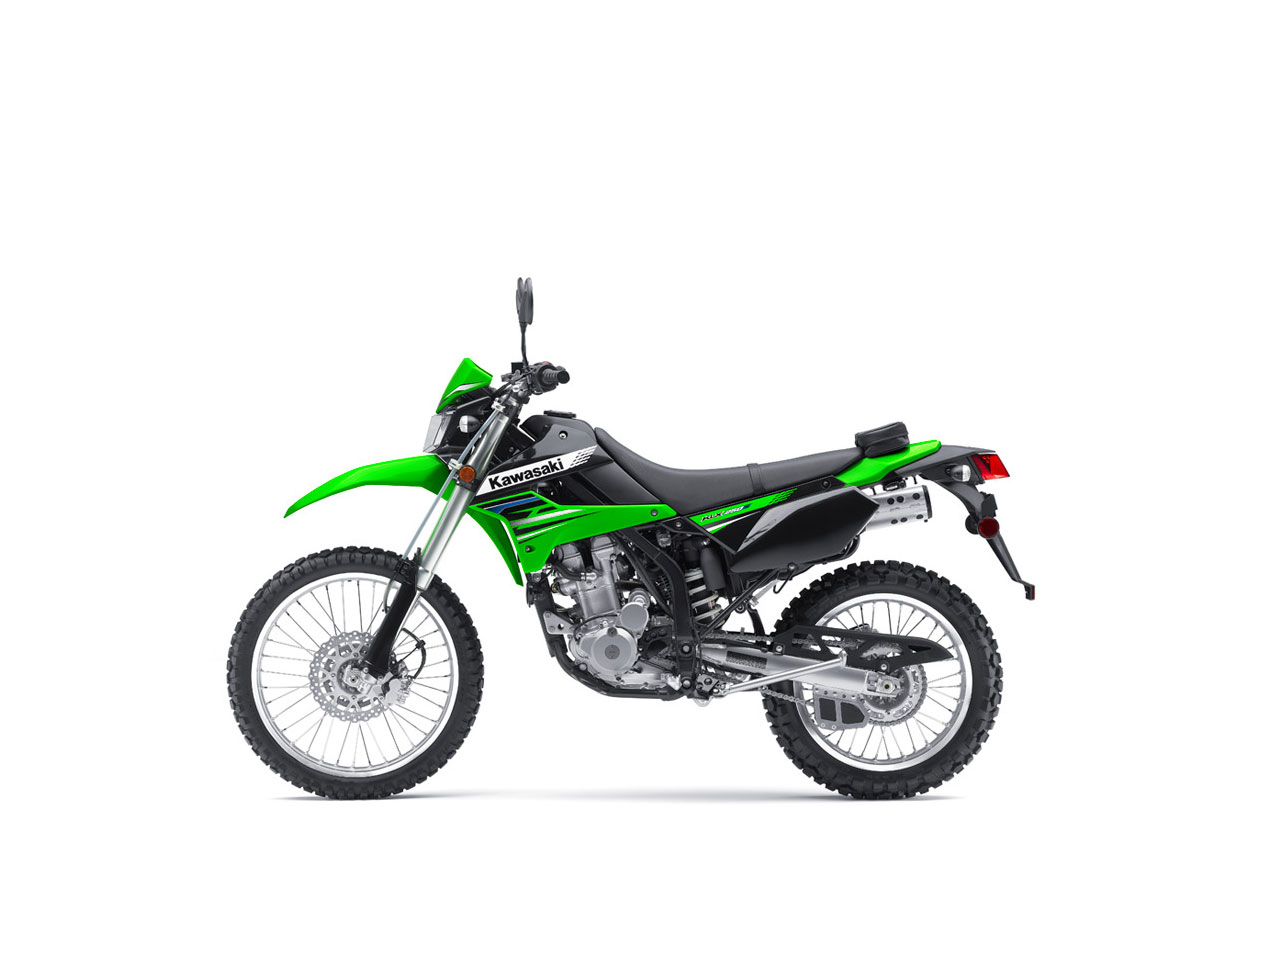 2009 Kawasaki KLX 250 S: pics, specs and information